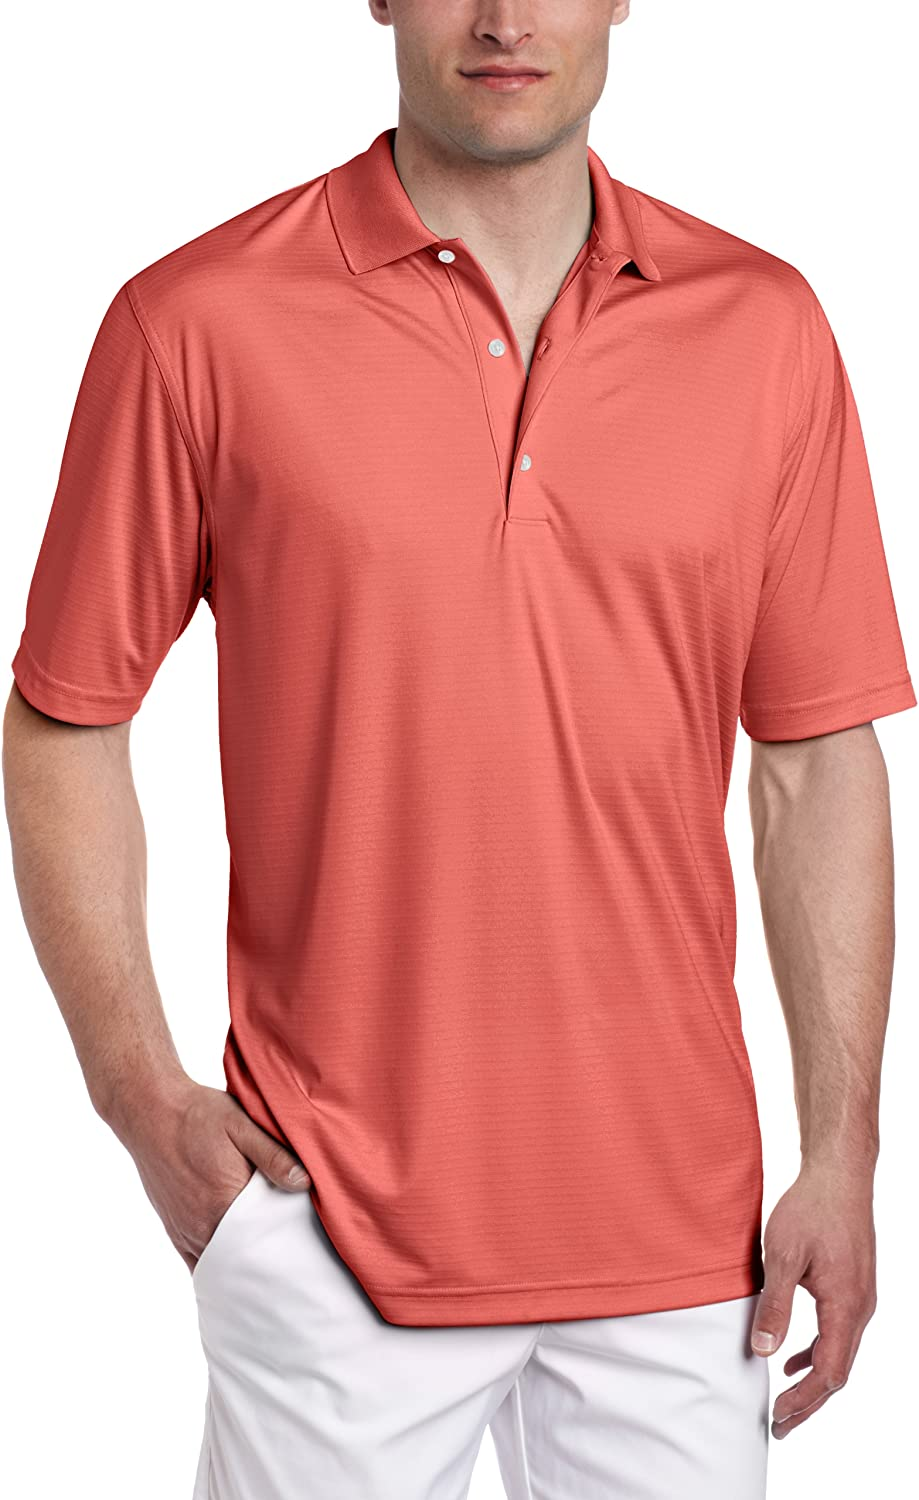 Greg Norman Louisville-Jefferson County Mall Collection Men's ML75 Interlock Max 65% OFF Solid Textured Polo